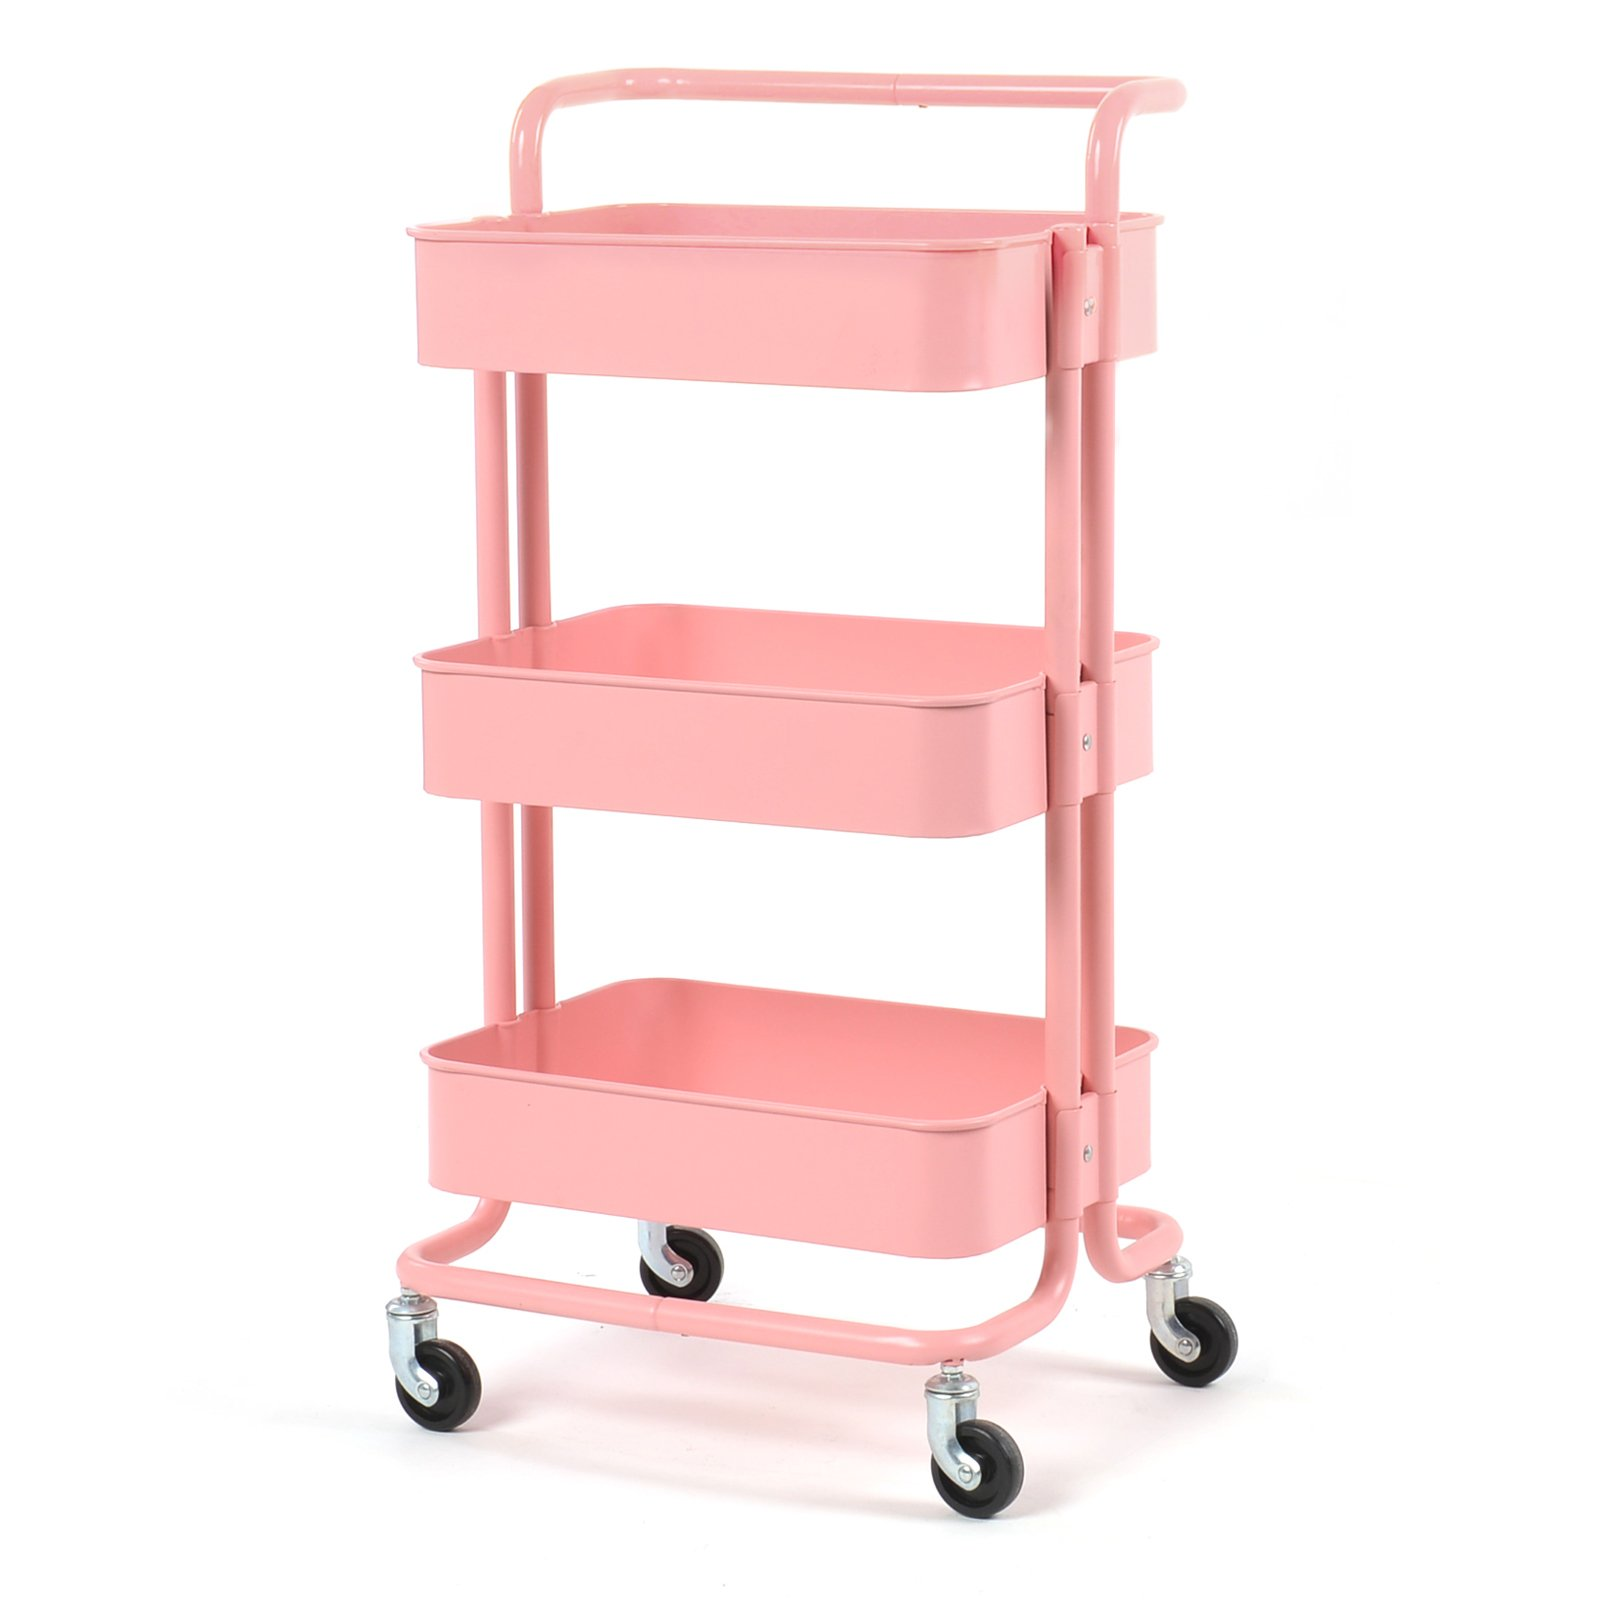 Cheap Small Rolling Cart, find Small Rolling Cart deals on line at on bathroom cabinets on wheels, bathroom space saver storage, bathroom storage solutions, bathroom wall mounted cabinets, bathroom rolling carts, bathroom storage on wheels, bathroom cleaning cart, bathroom caddies on wheels, bathroom table with wheels, bathroom counters on wheels, rolling metal cart on wheels, bathroom vanities product, bathroom organization and storage, hotel luggage cart wheels, bathroom shower caddies, bathroom shelving ideas, bathroom storage carts, bathroom drawer organizers, bathroom organizer cart, bathroom caddy on wheels,